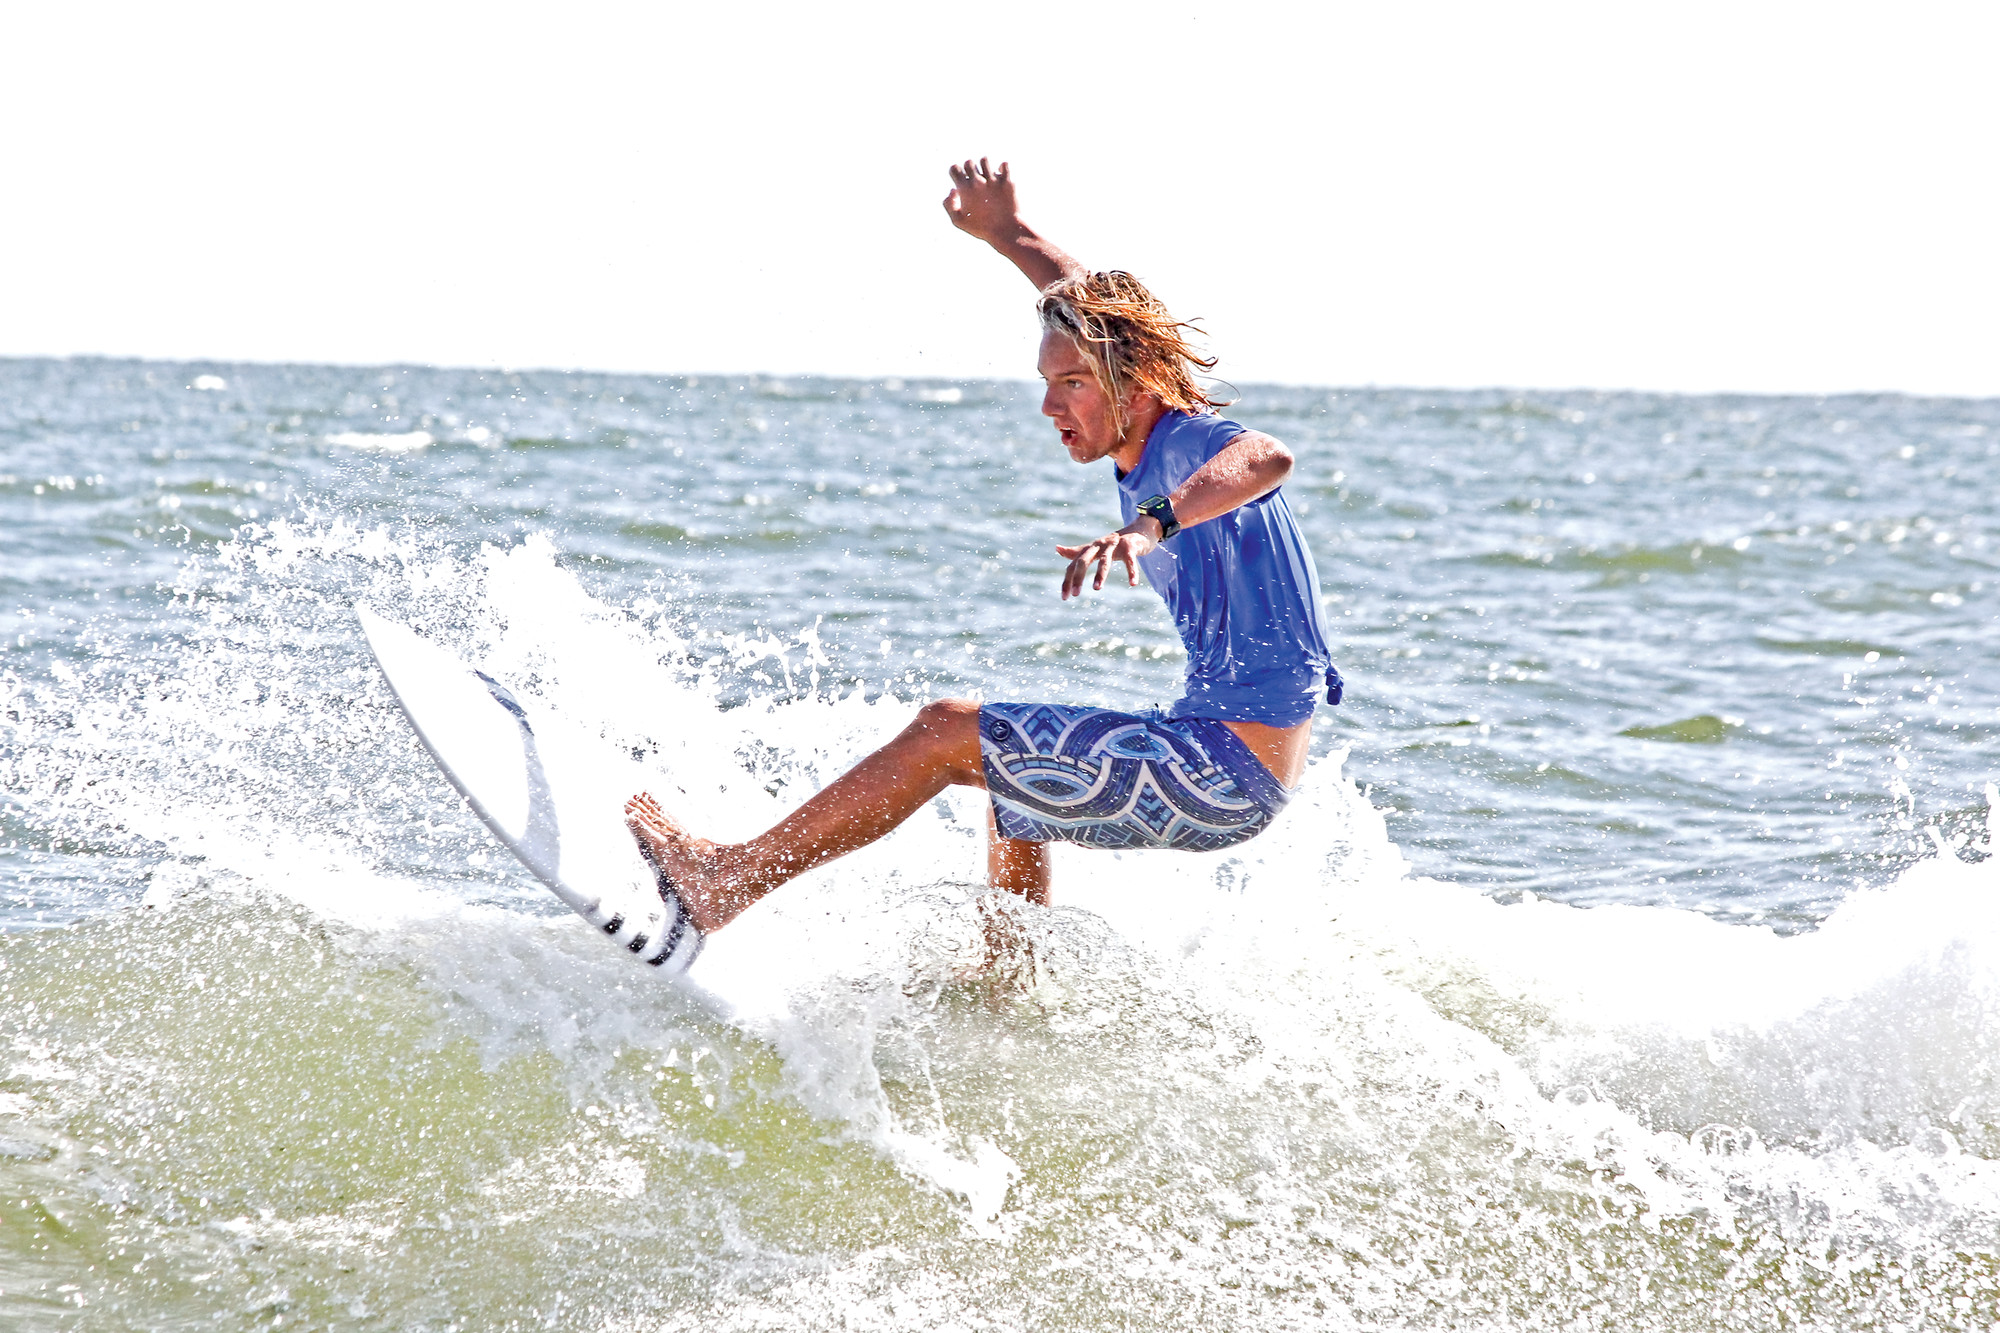 Bo Raynor rode the waves during the surf competition.